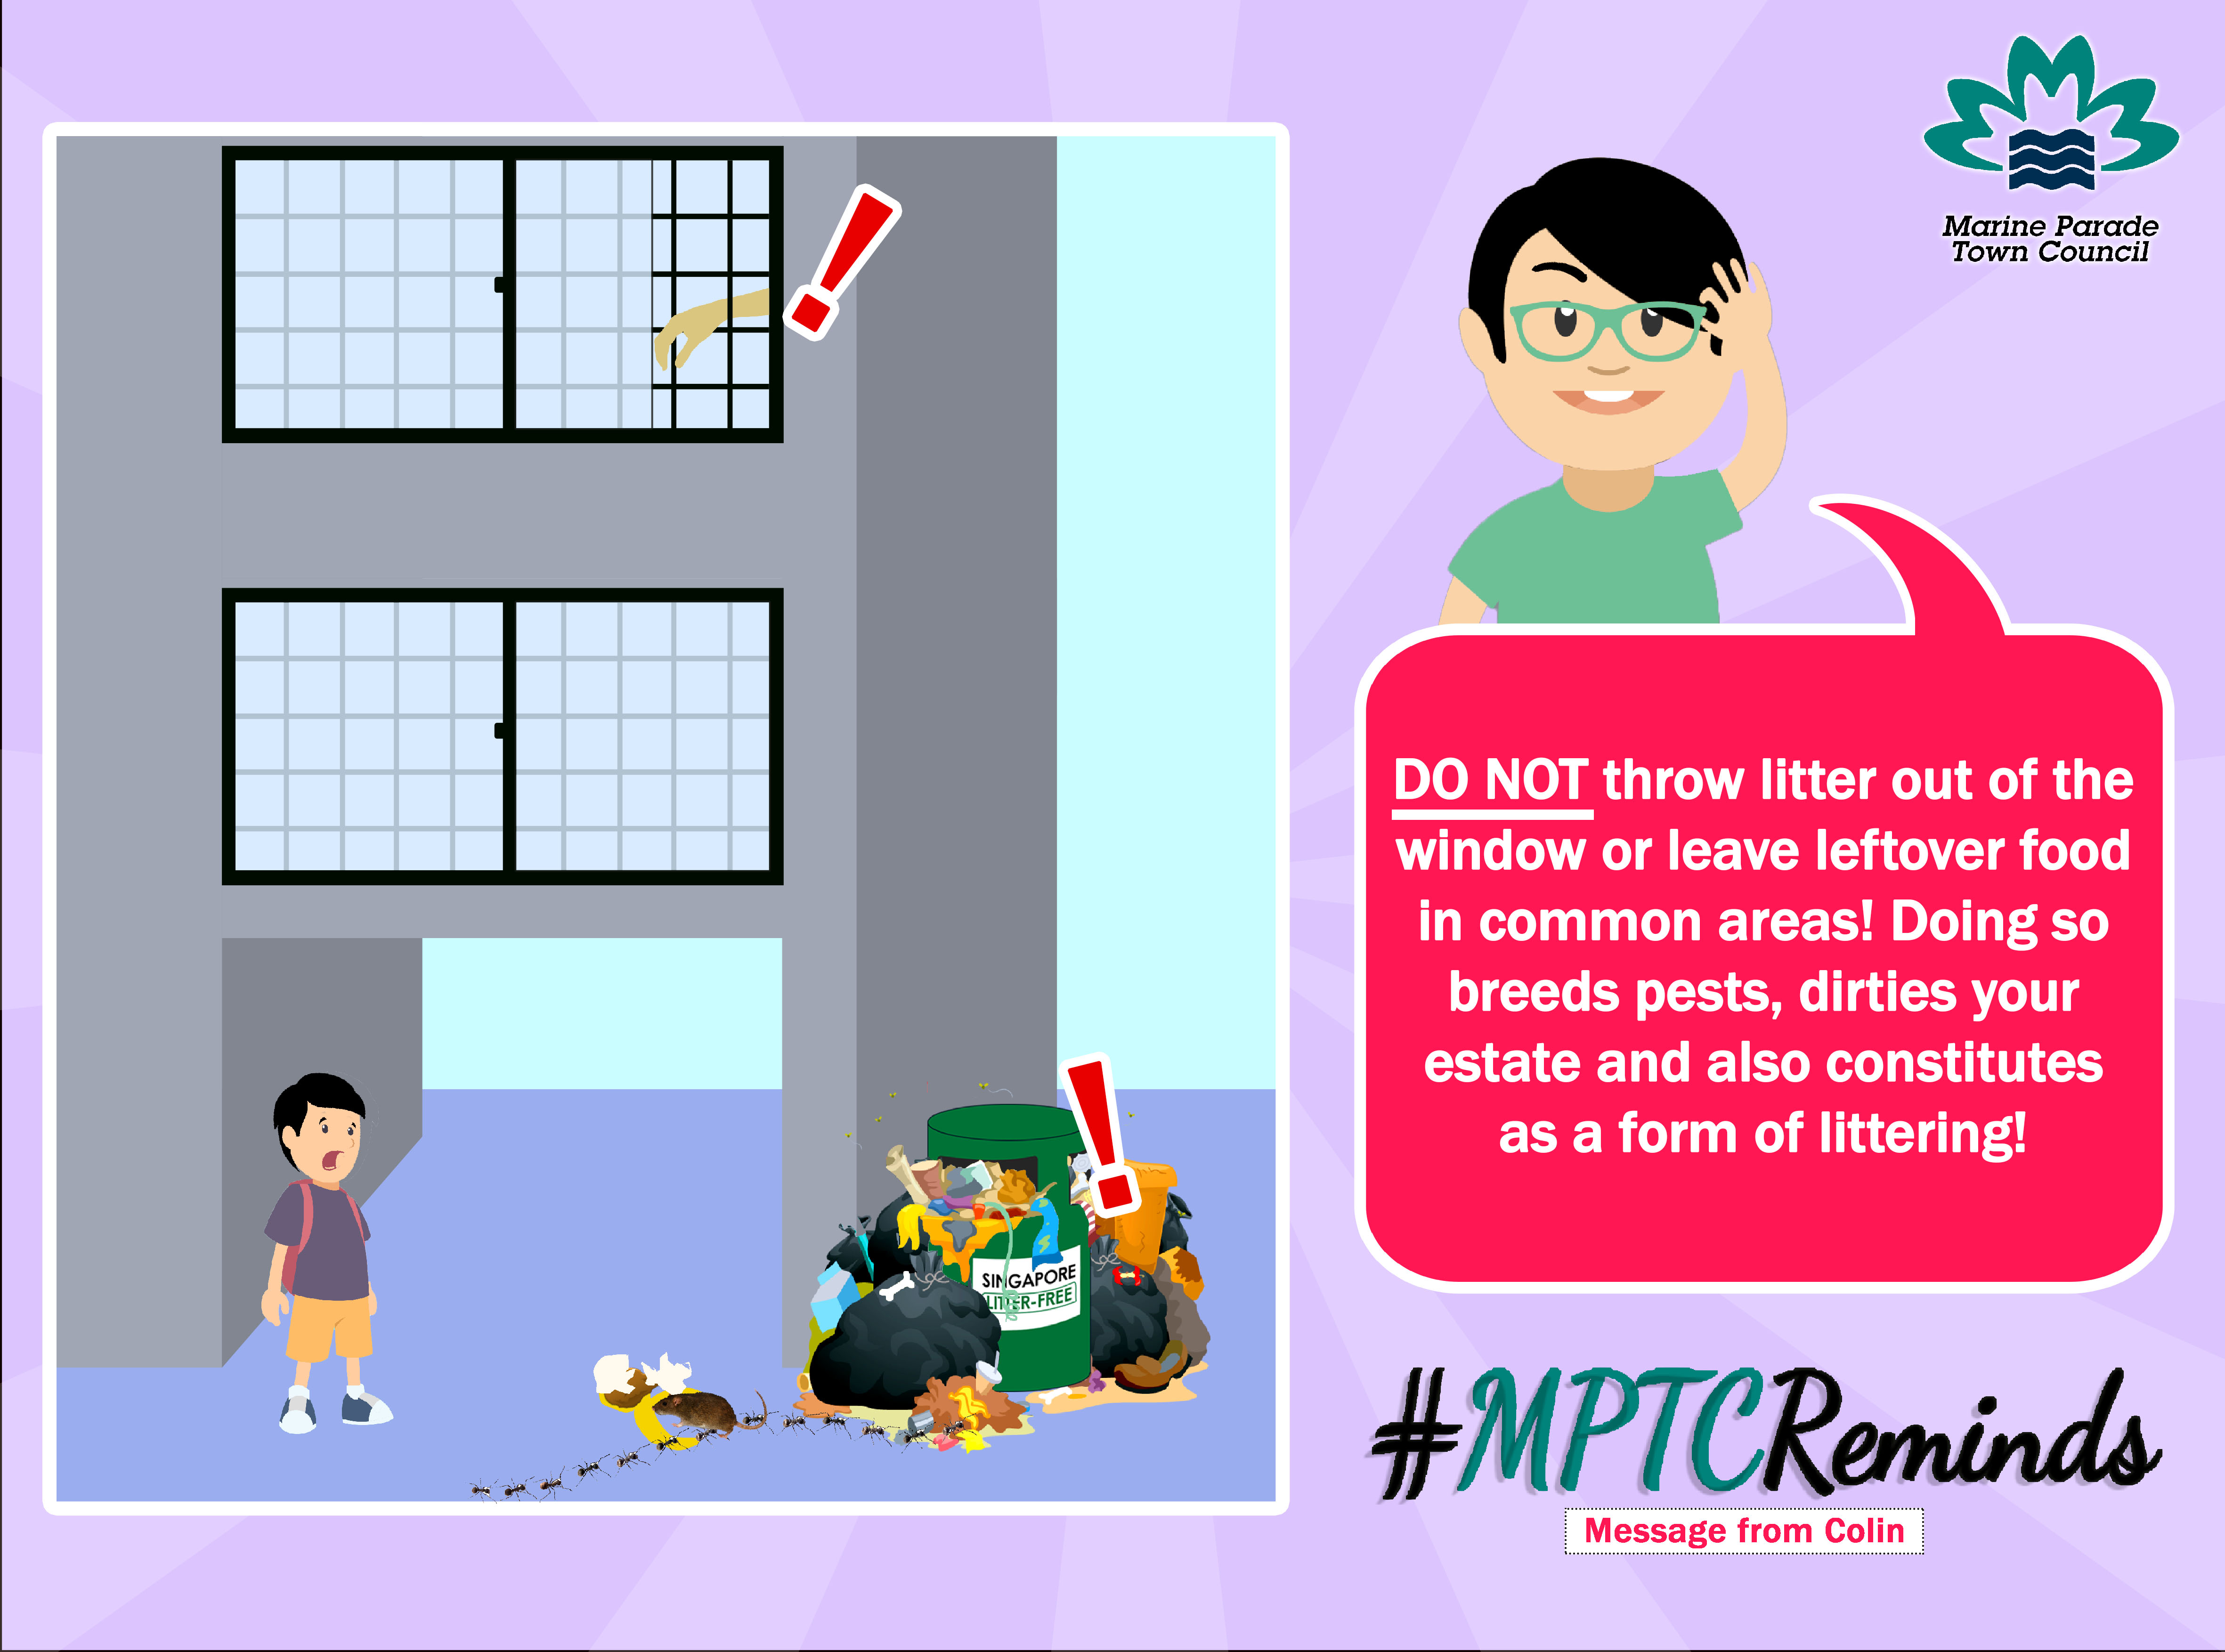 SAY NO TO HIGH RISE LITTERING!